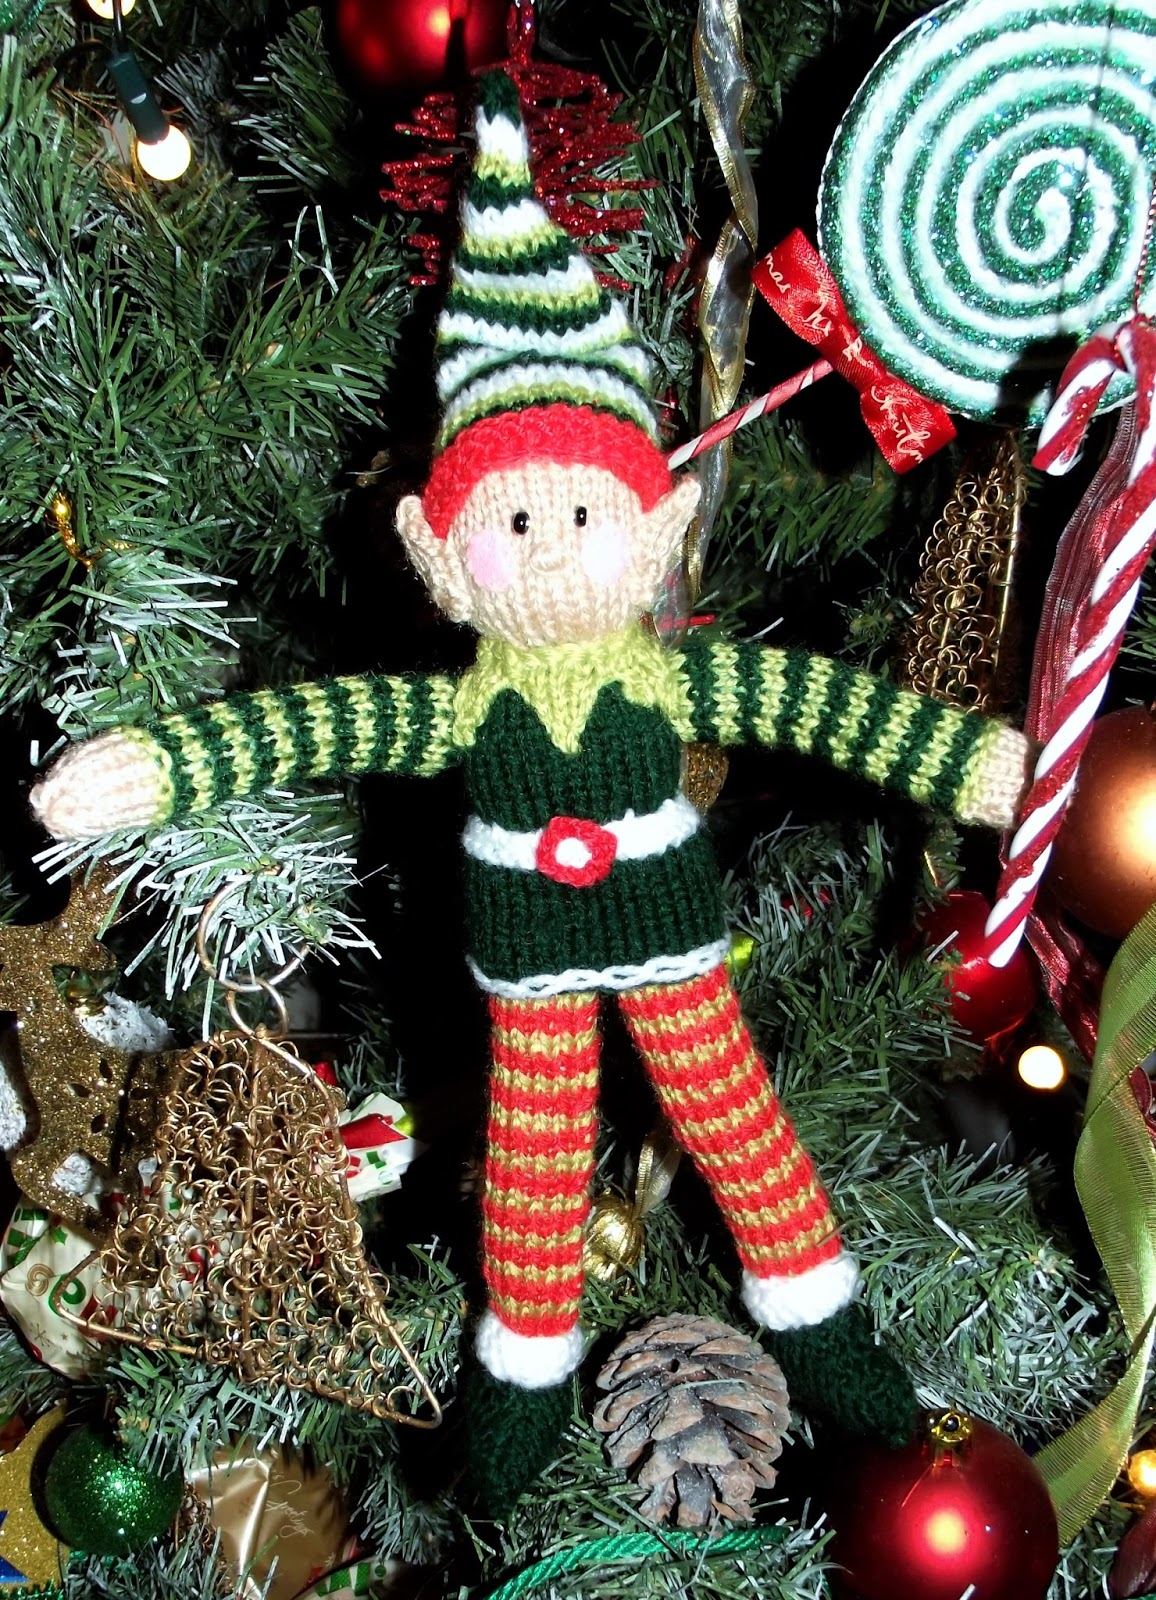 Liana Marcel - Keep calm and craft!: Free Christmas elf knitting ...